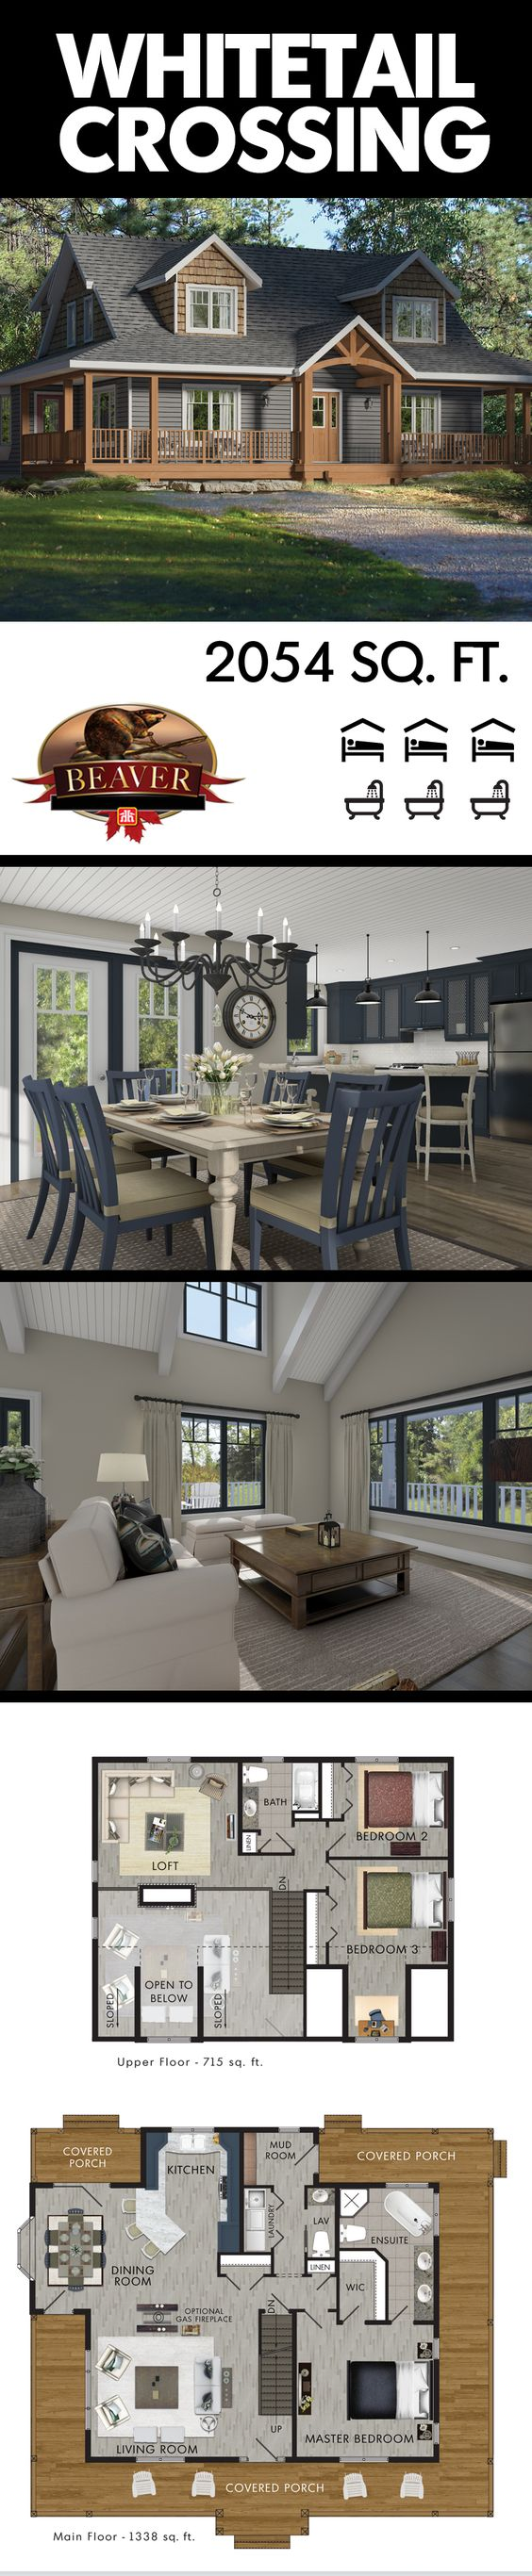 the whitetail crossing model is a welcomeing multi story home the whitetail crossing model is a welcomeing multi story home complete with a large wrap around covered porch with 3 bedrooms and a loft it mak